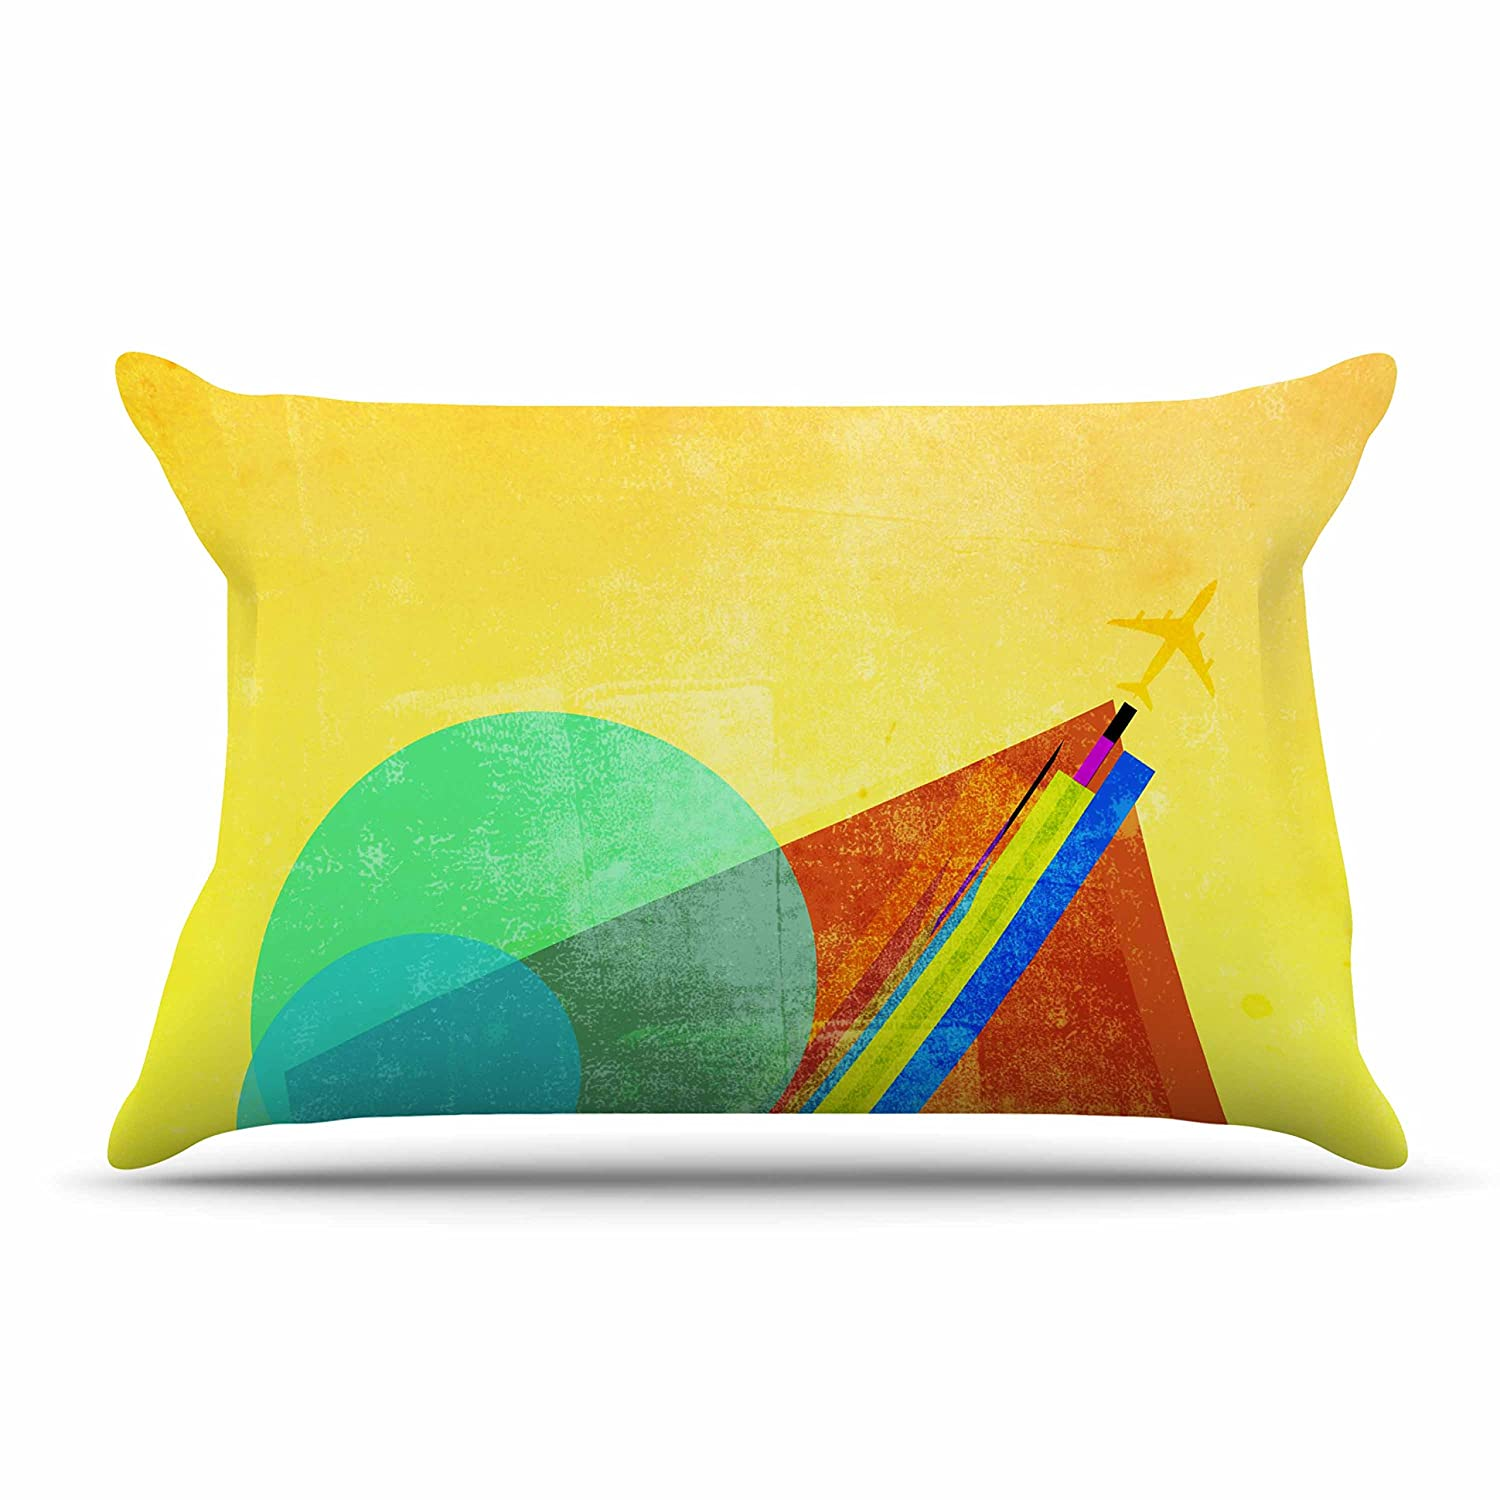 30 x 20 Pillow Sham Kess InHouse Frederic Levy-Hadida Landing Blue Yellow Mixed Media Geometric